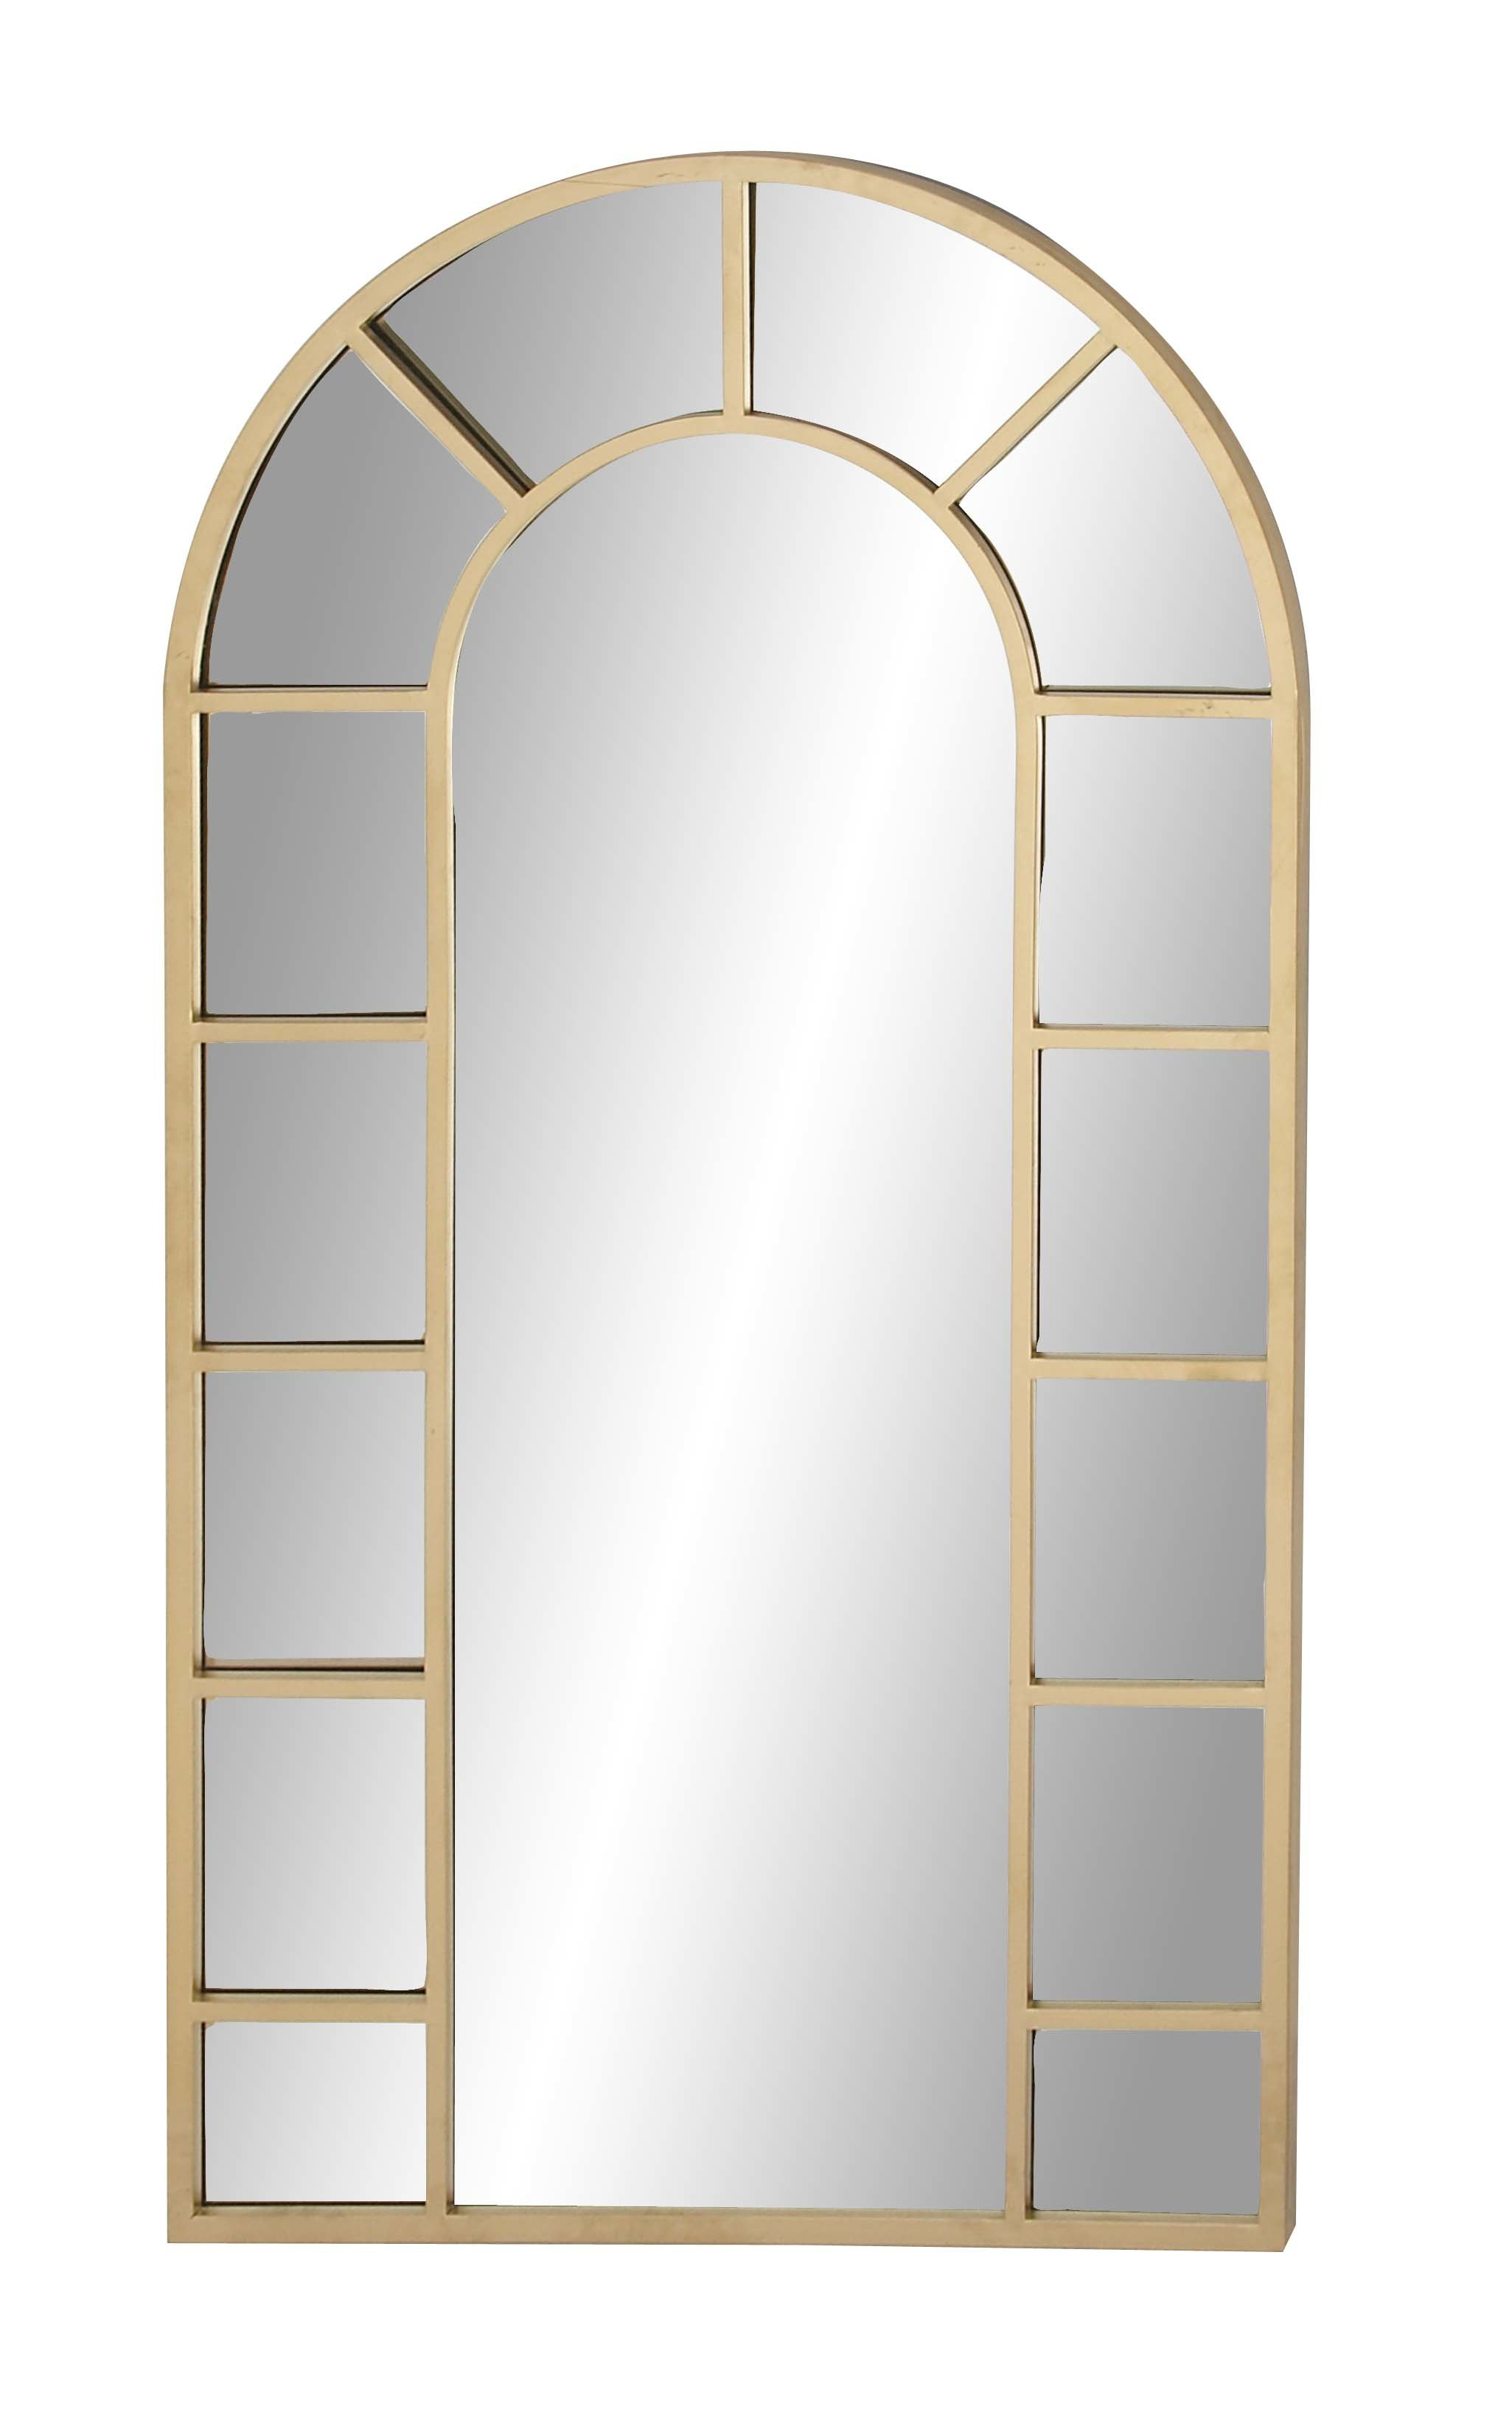 Tall Arched Scalloped Mirror | Wayfair in Dariel Tall Arched Scalloped Wall Mirrors (Image 24 of 30)